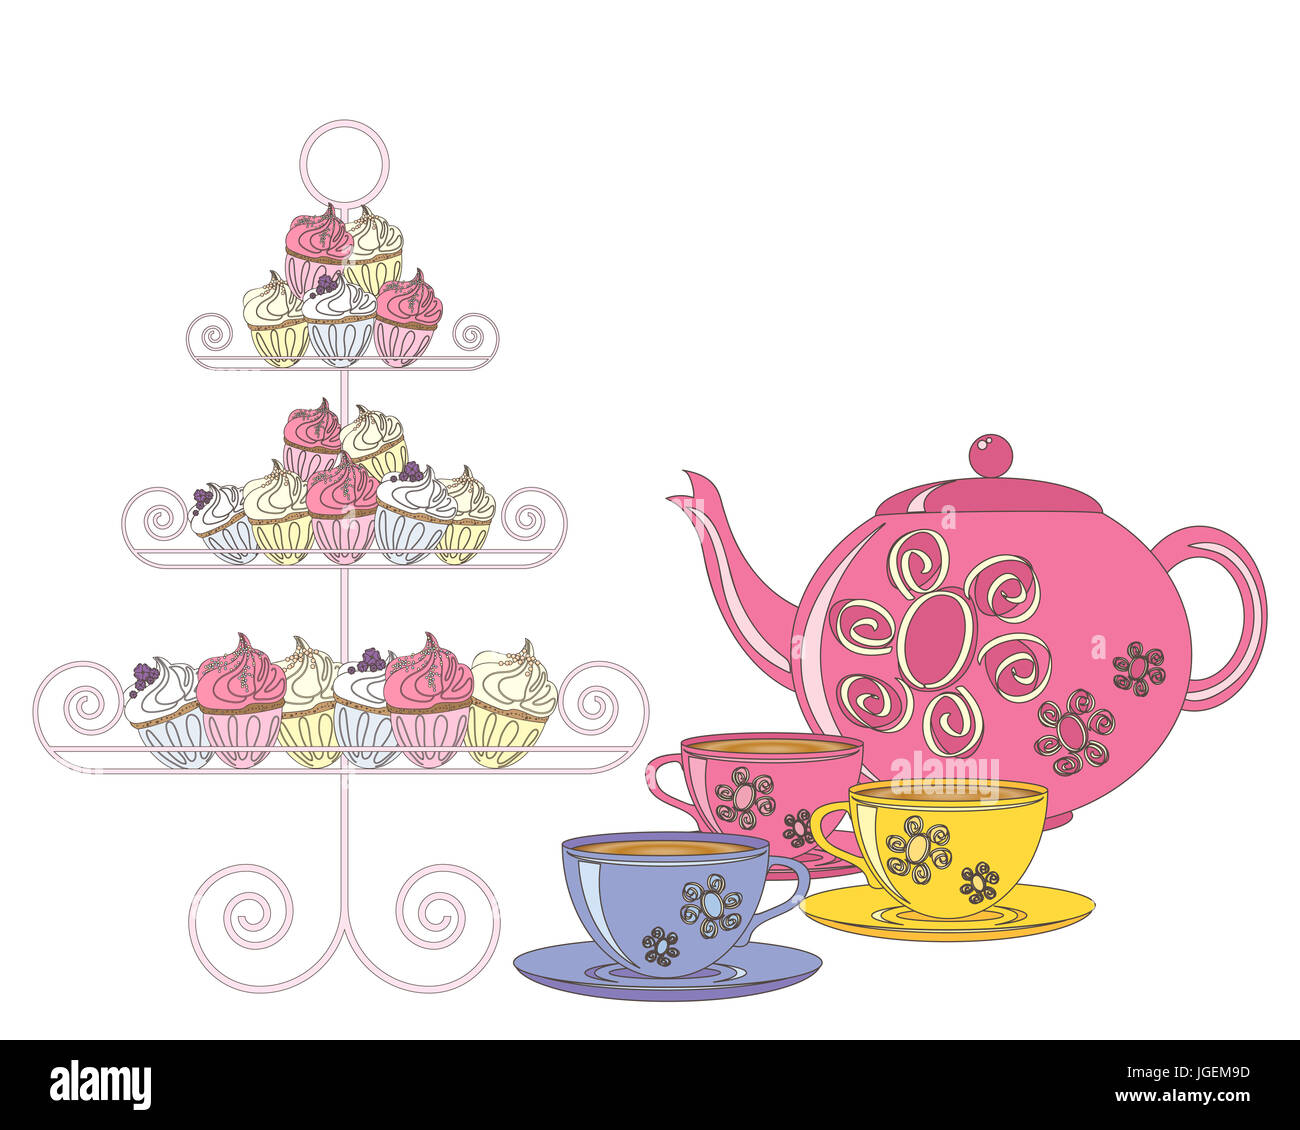 Free Download Cake And Teas